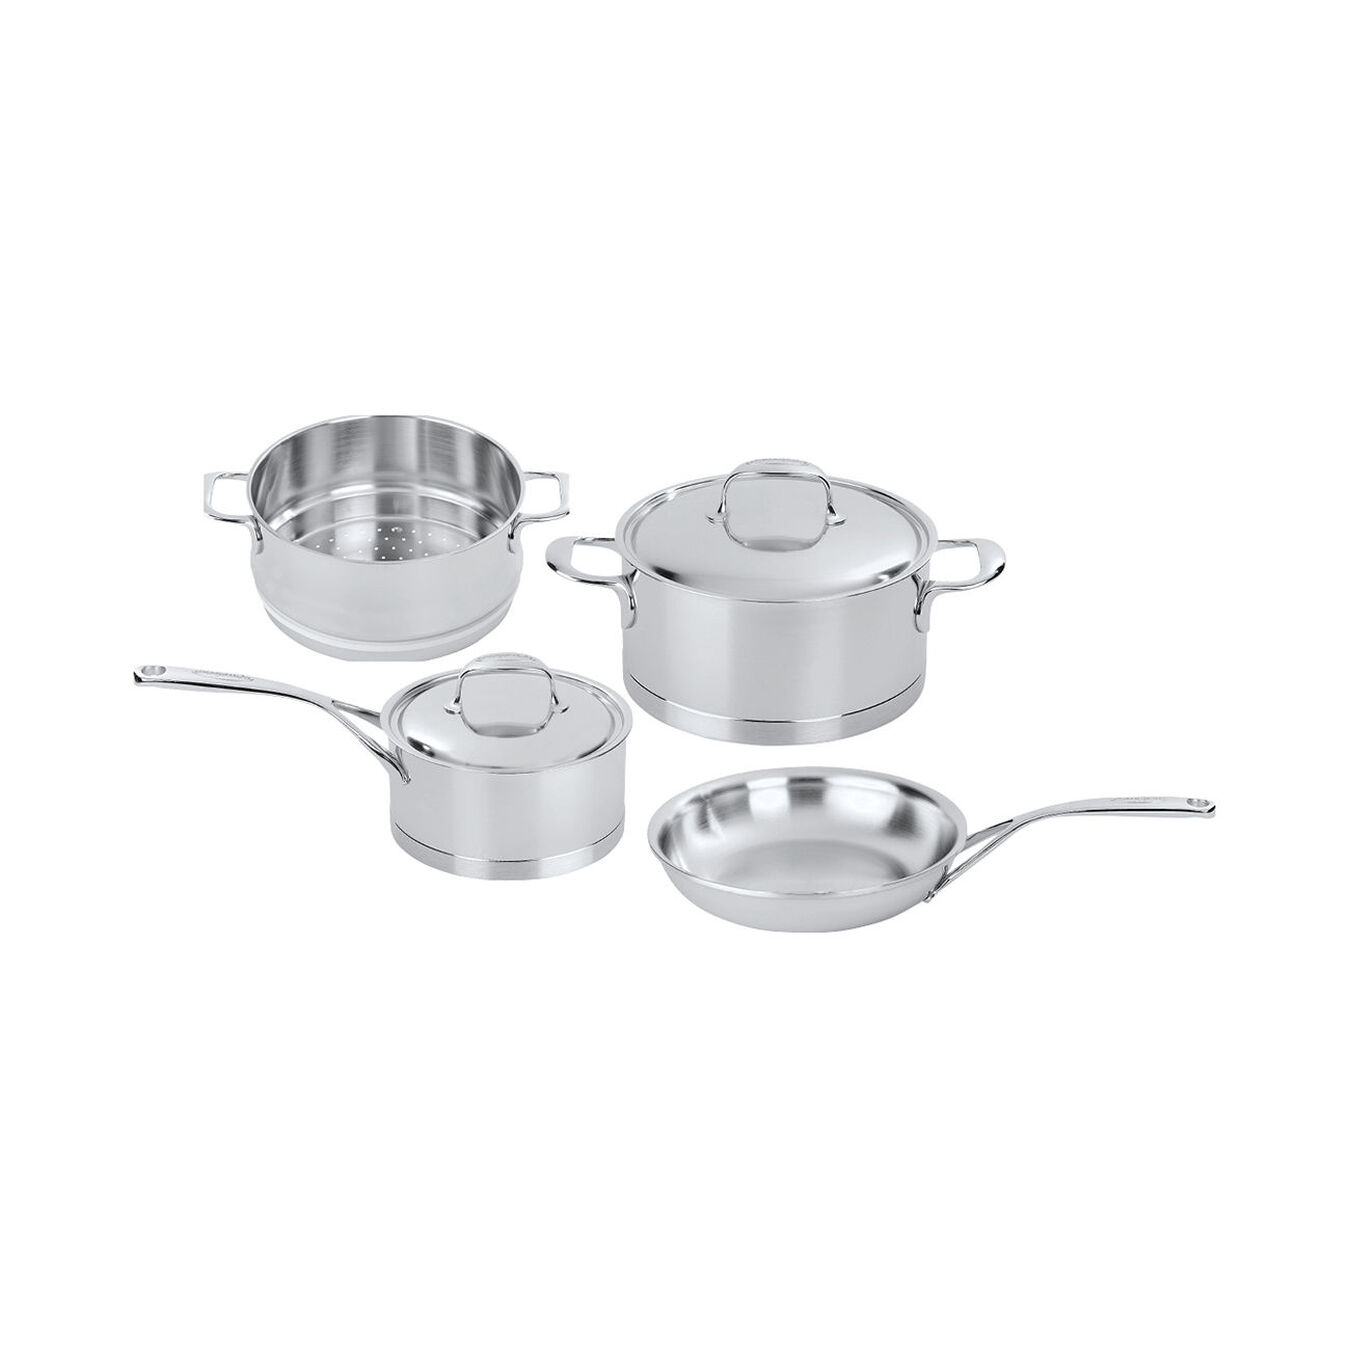 6-pc Stainless Steel Cookware Set,,large 1